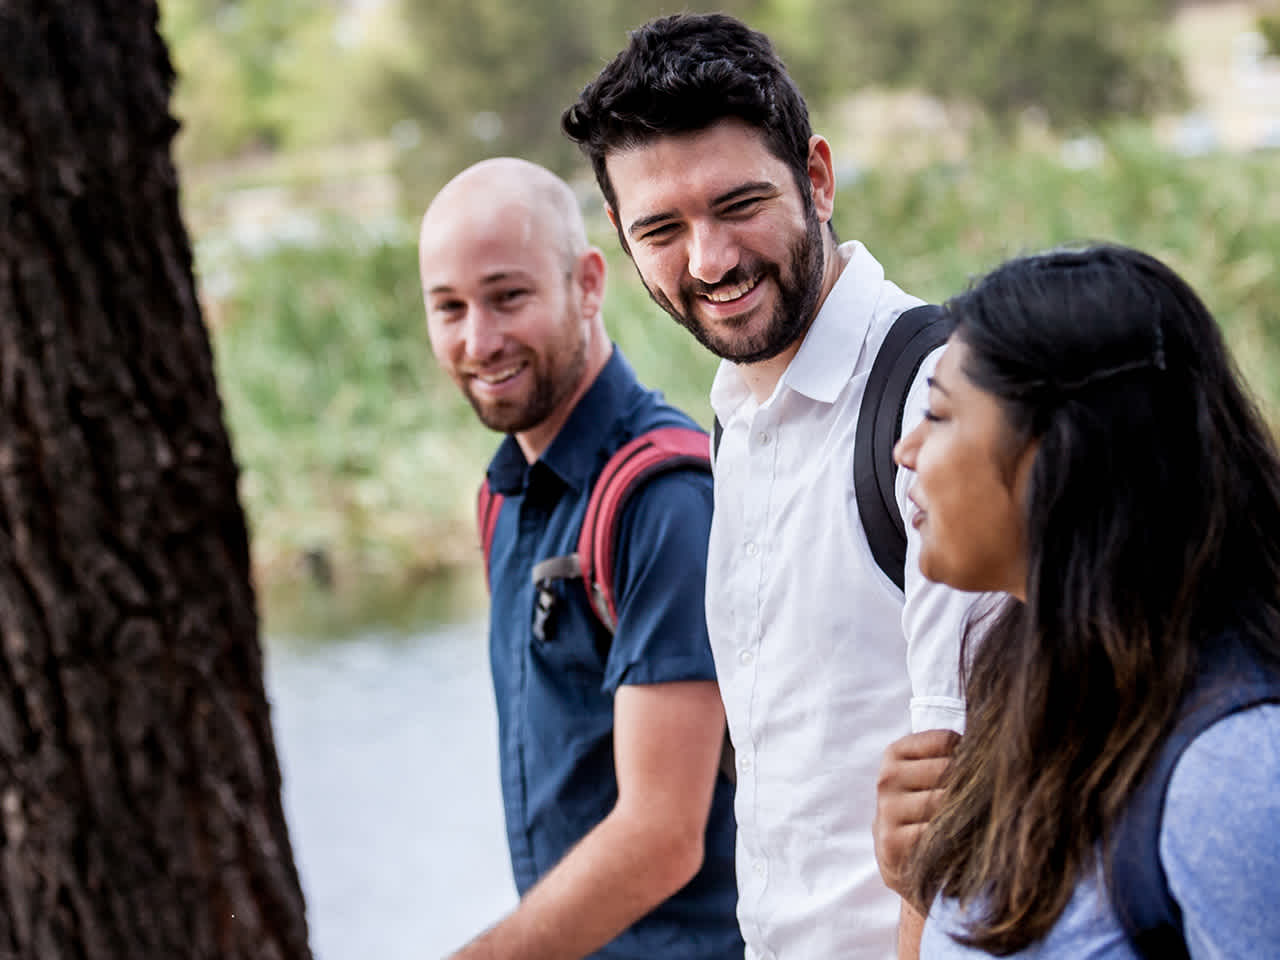 Three people walking and smiling, with trees in the background